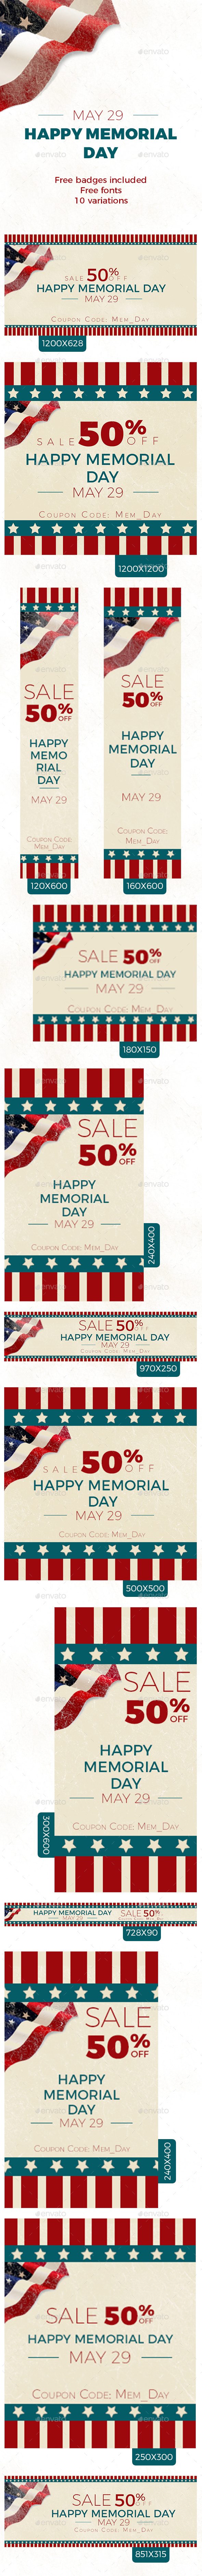 Memorial Day Banners - Banners & Ads Web Elements